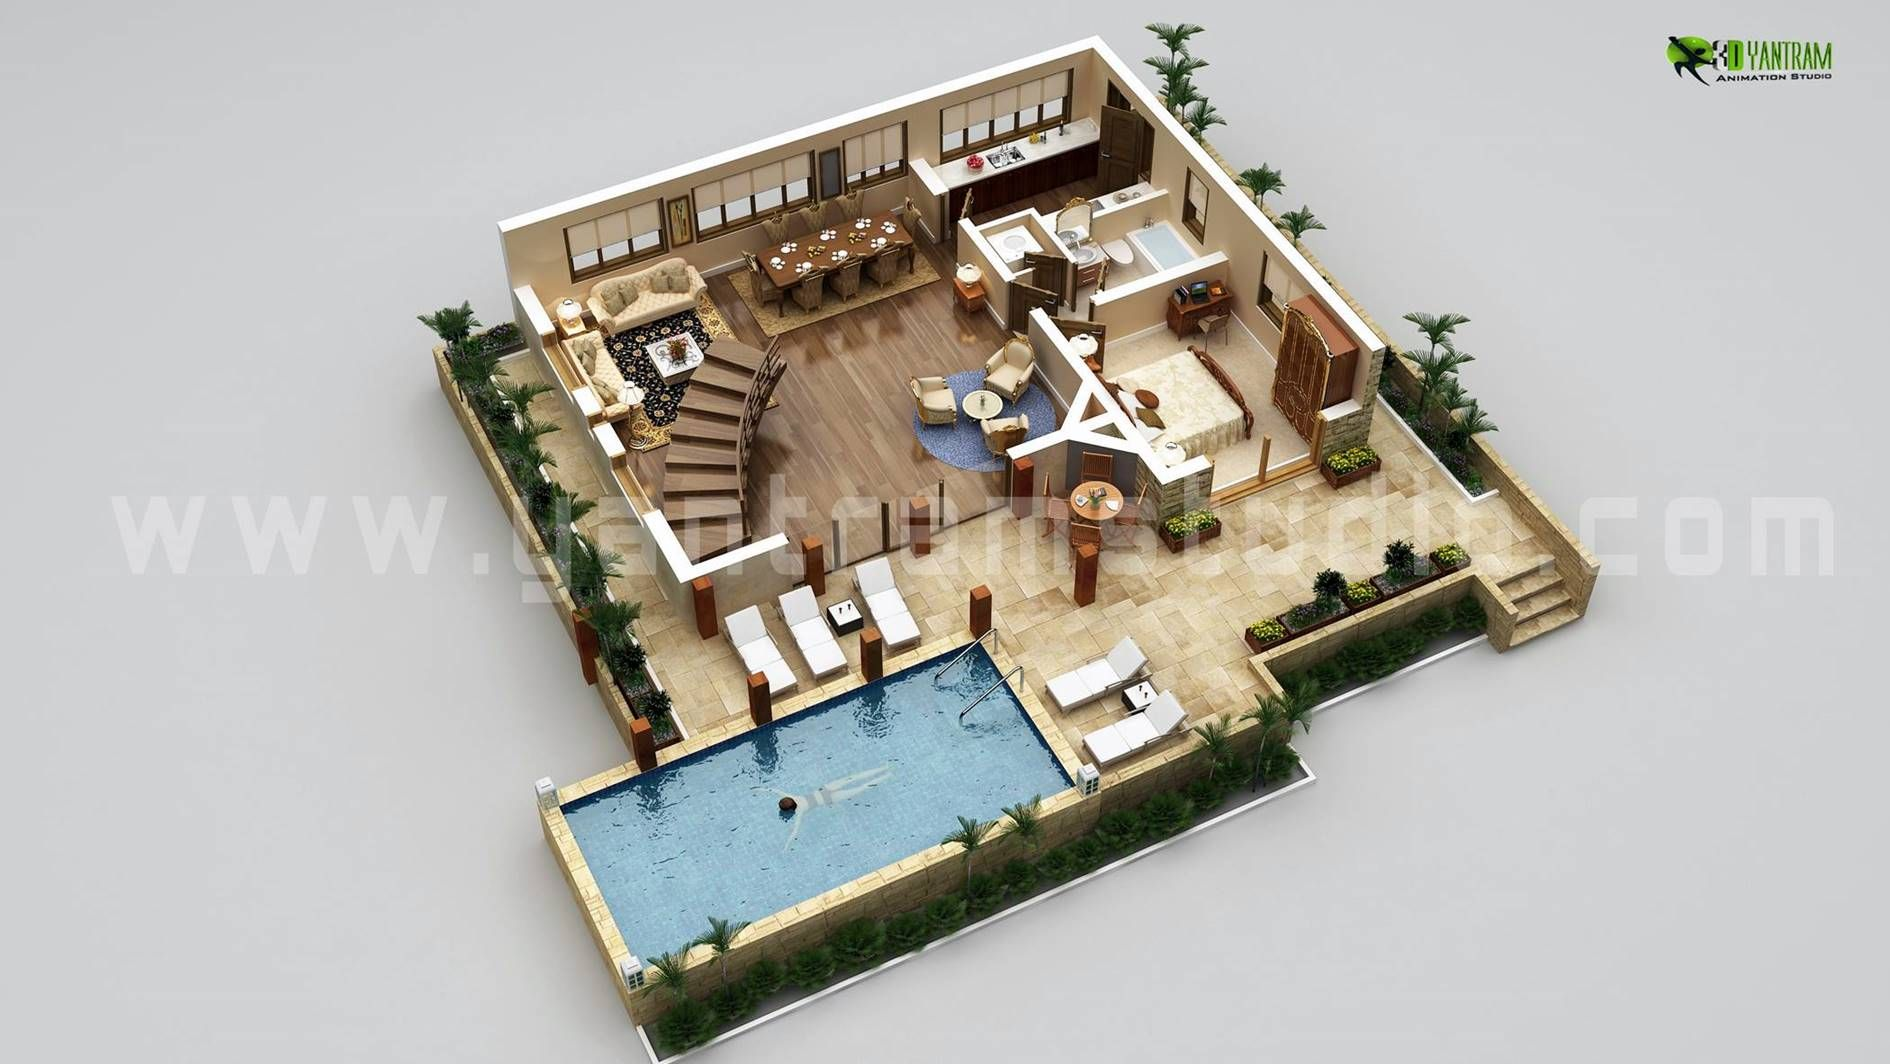 Interactive 3D Floor Plan Commercial Ideas in 2019 | Scenes | House on gaming house plans, web house plans, paper home plans, beach house plans, mine craft house plans, architecture house plans, small house plans, hd house plans, car house plans, 3-dimensional house plans, digital house plans, tiny house plans, luxury contemporary house plans, traditional house plans, unique house plans, 3-bedroom ranch house plans, floor plans, windows house plans, aerial house plans, 4d house plans,